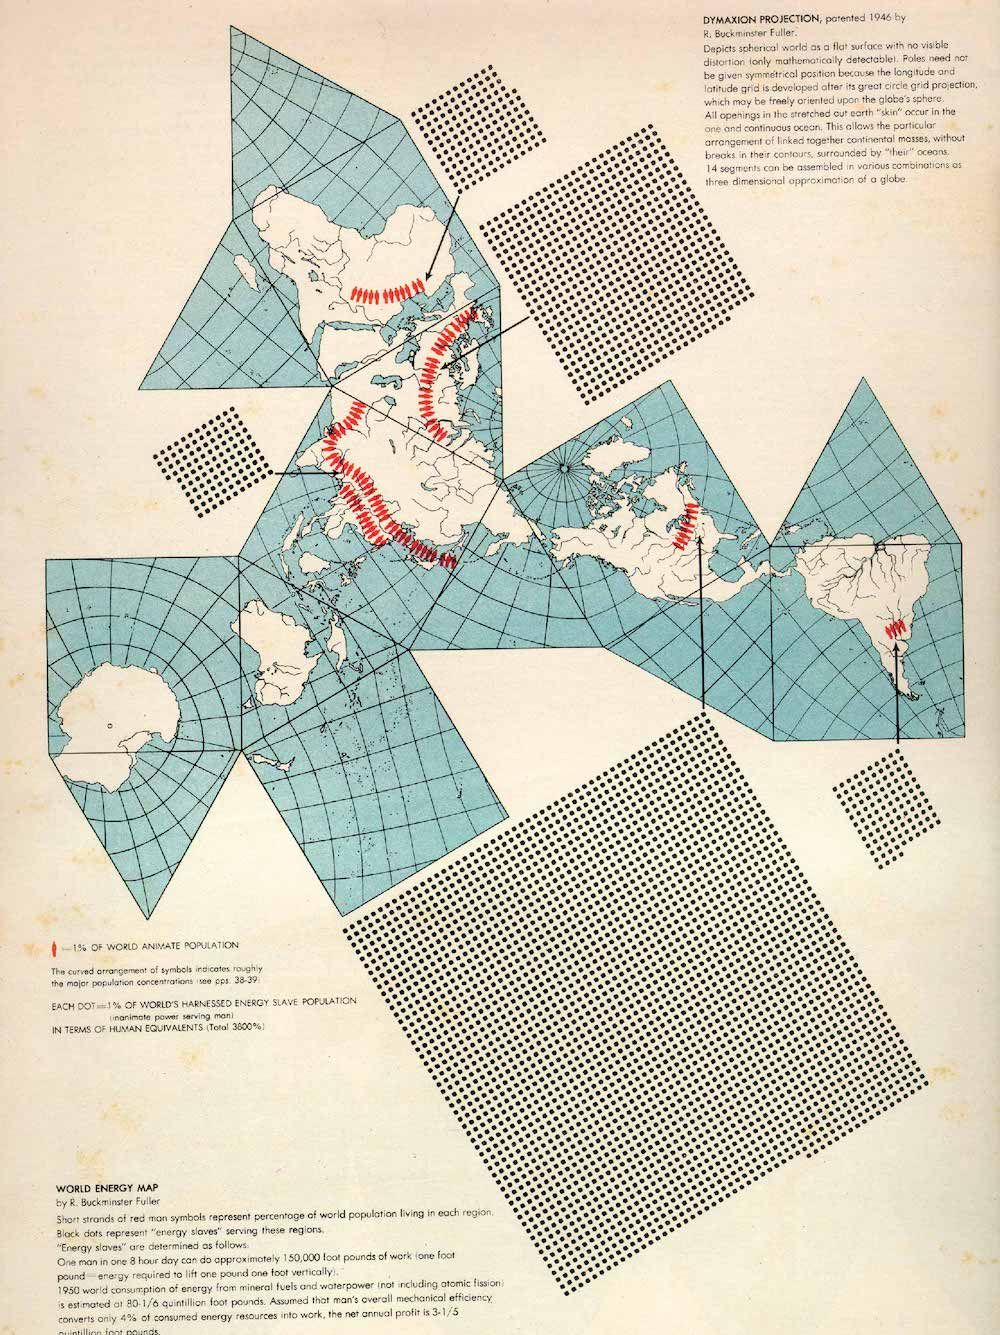 Fonte: H. Bayer, «World Energy Map», da World Geo-Graphic Atlas, Chicago 1953, Container Corporation of America, p. 278.